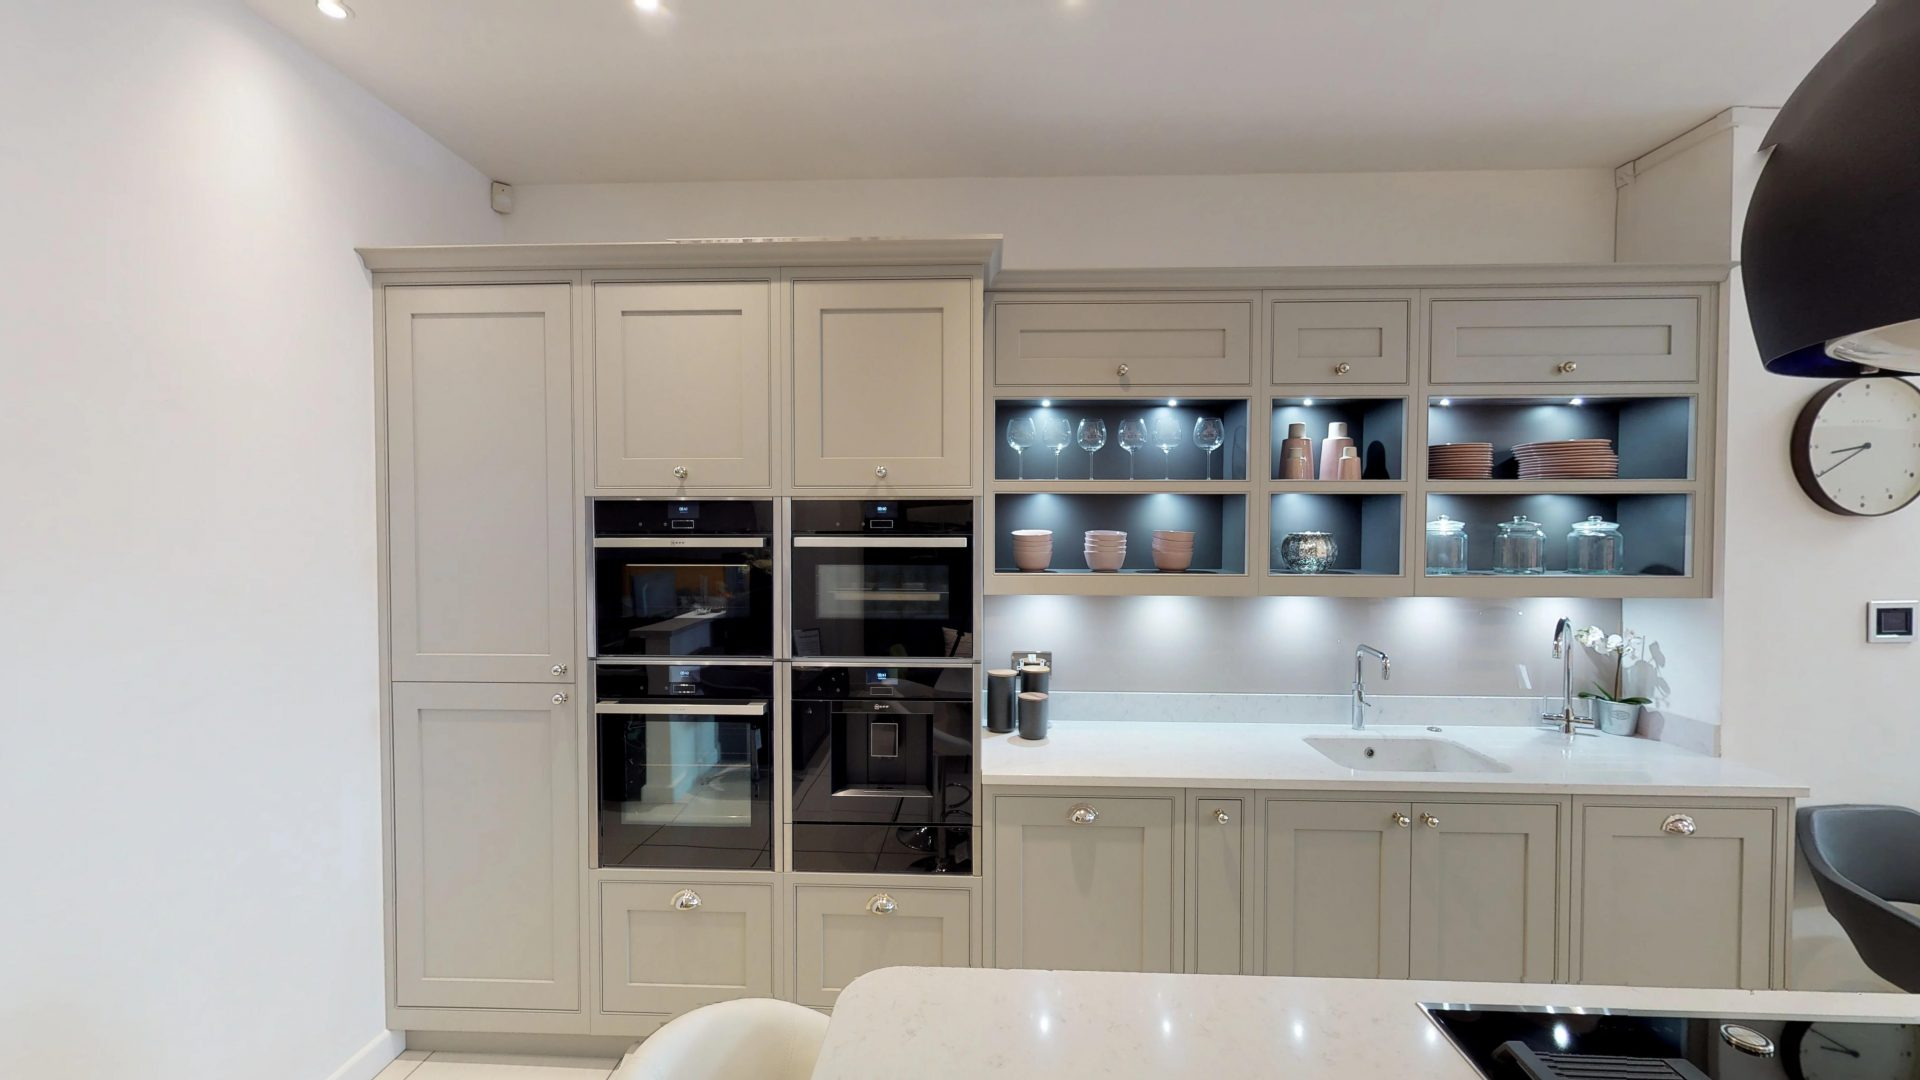 The-Kitchen-Partners-04292019_151609